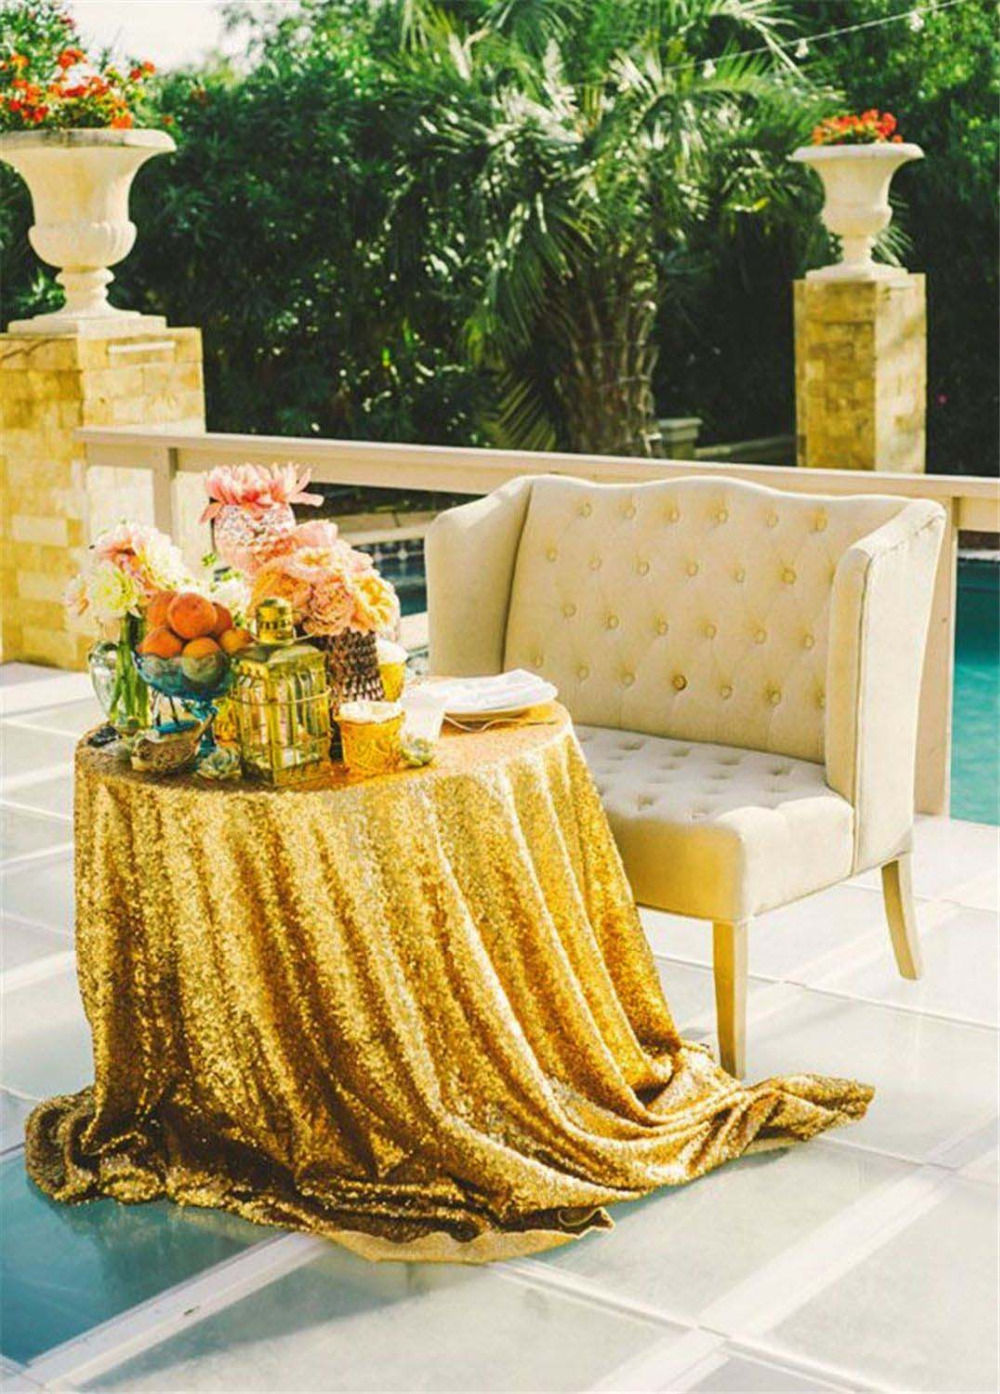 96 inch round tablecloth - 132 Inch Round Gold Sequin Tablecloth Wedding Beautiful Gold Sequin Table Cloth Overlay Cover